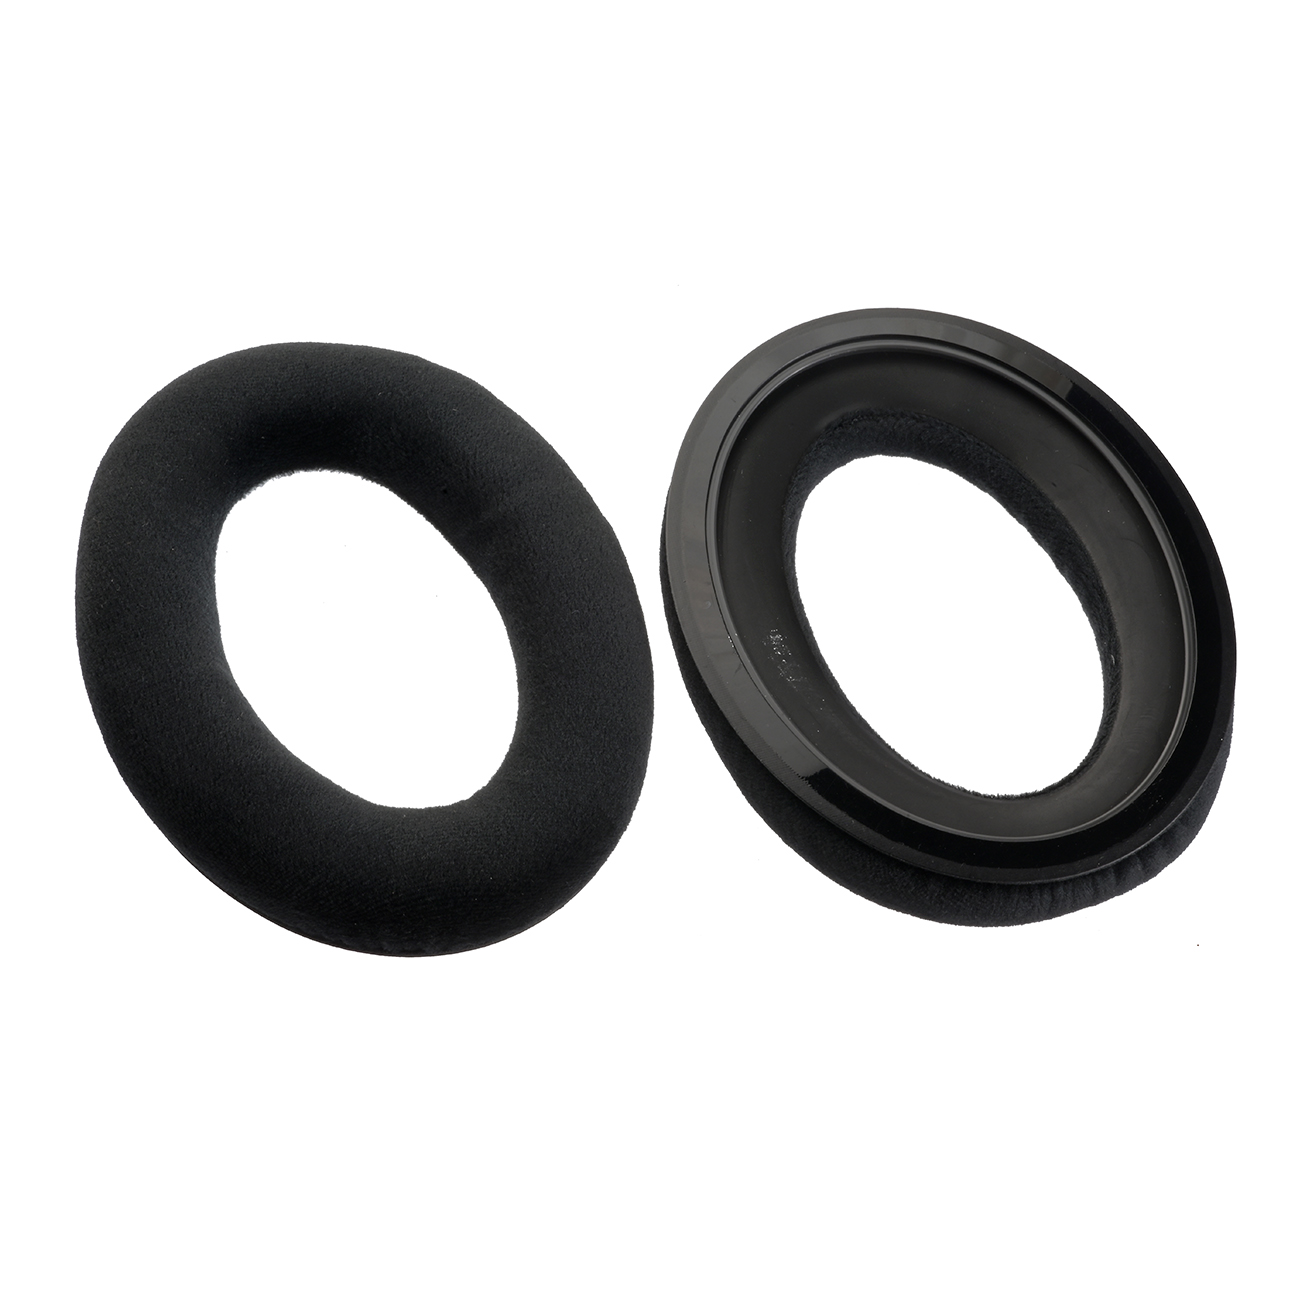 Earpads (1 pair)